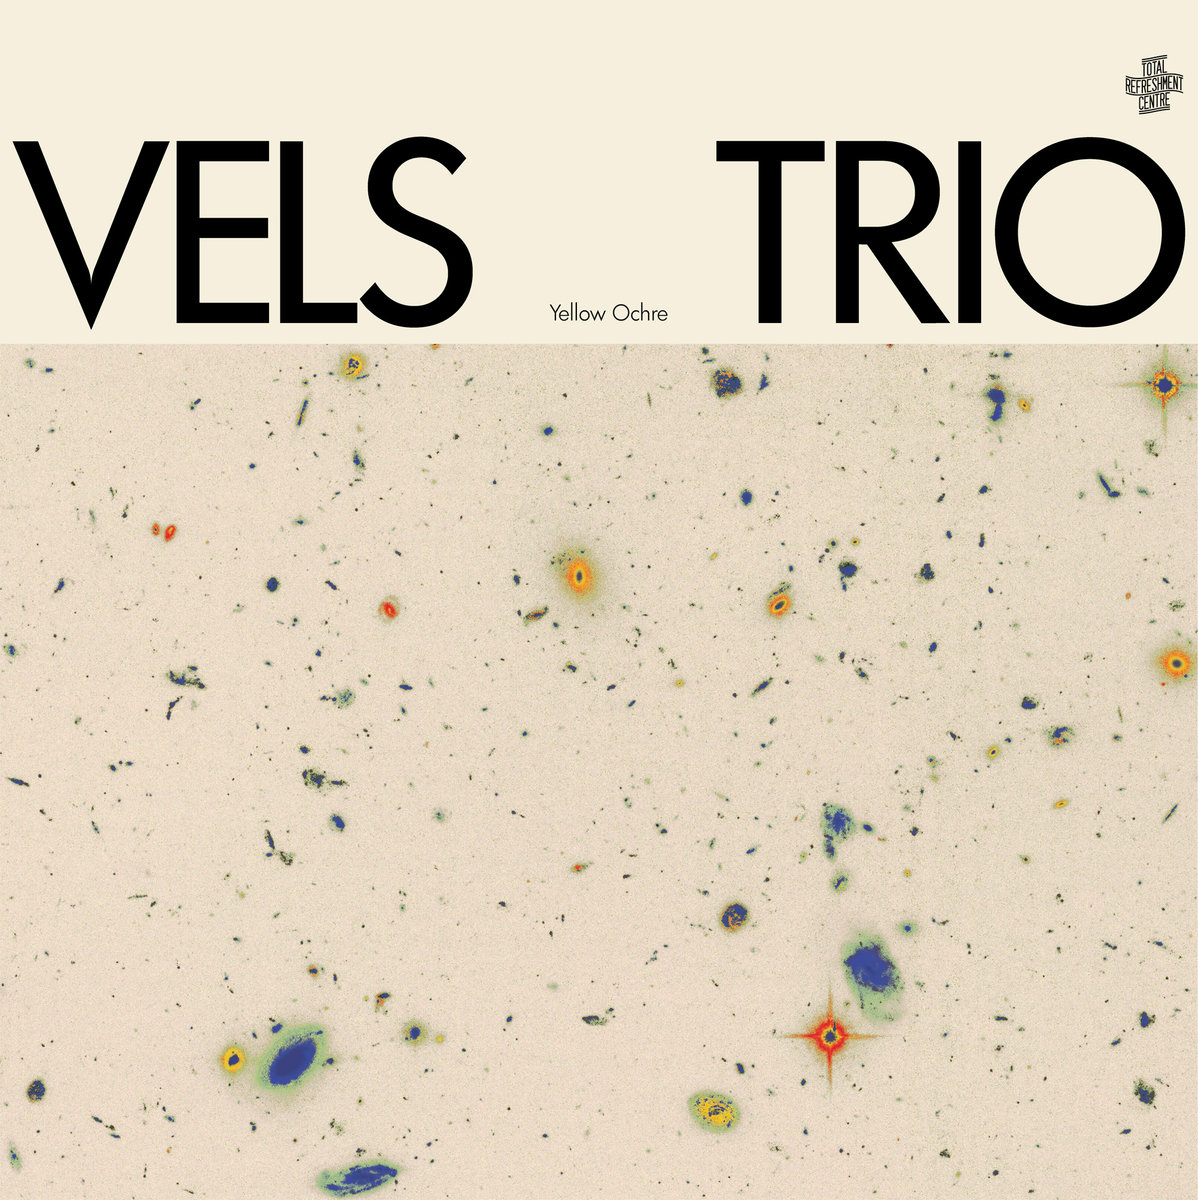 VELS TRIO - YELLOW OCHRE (TOTAL REFRESHMENT CENTRE, 2017)